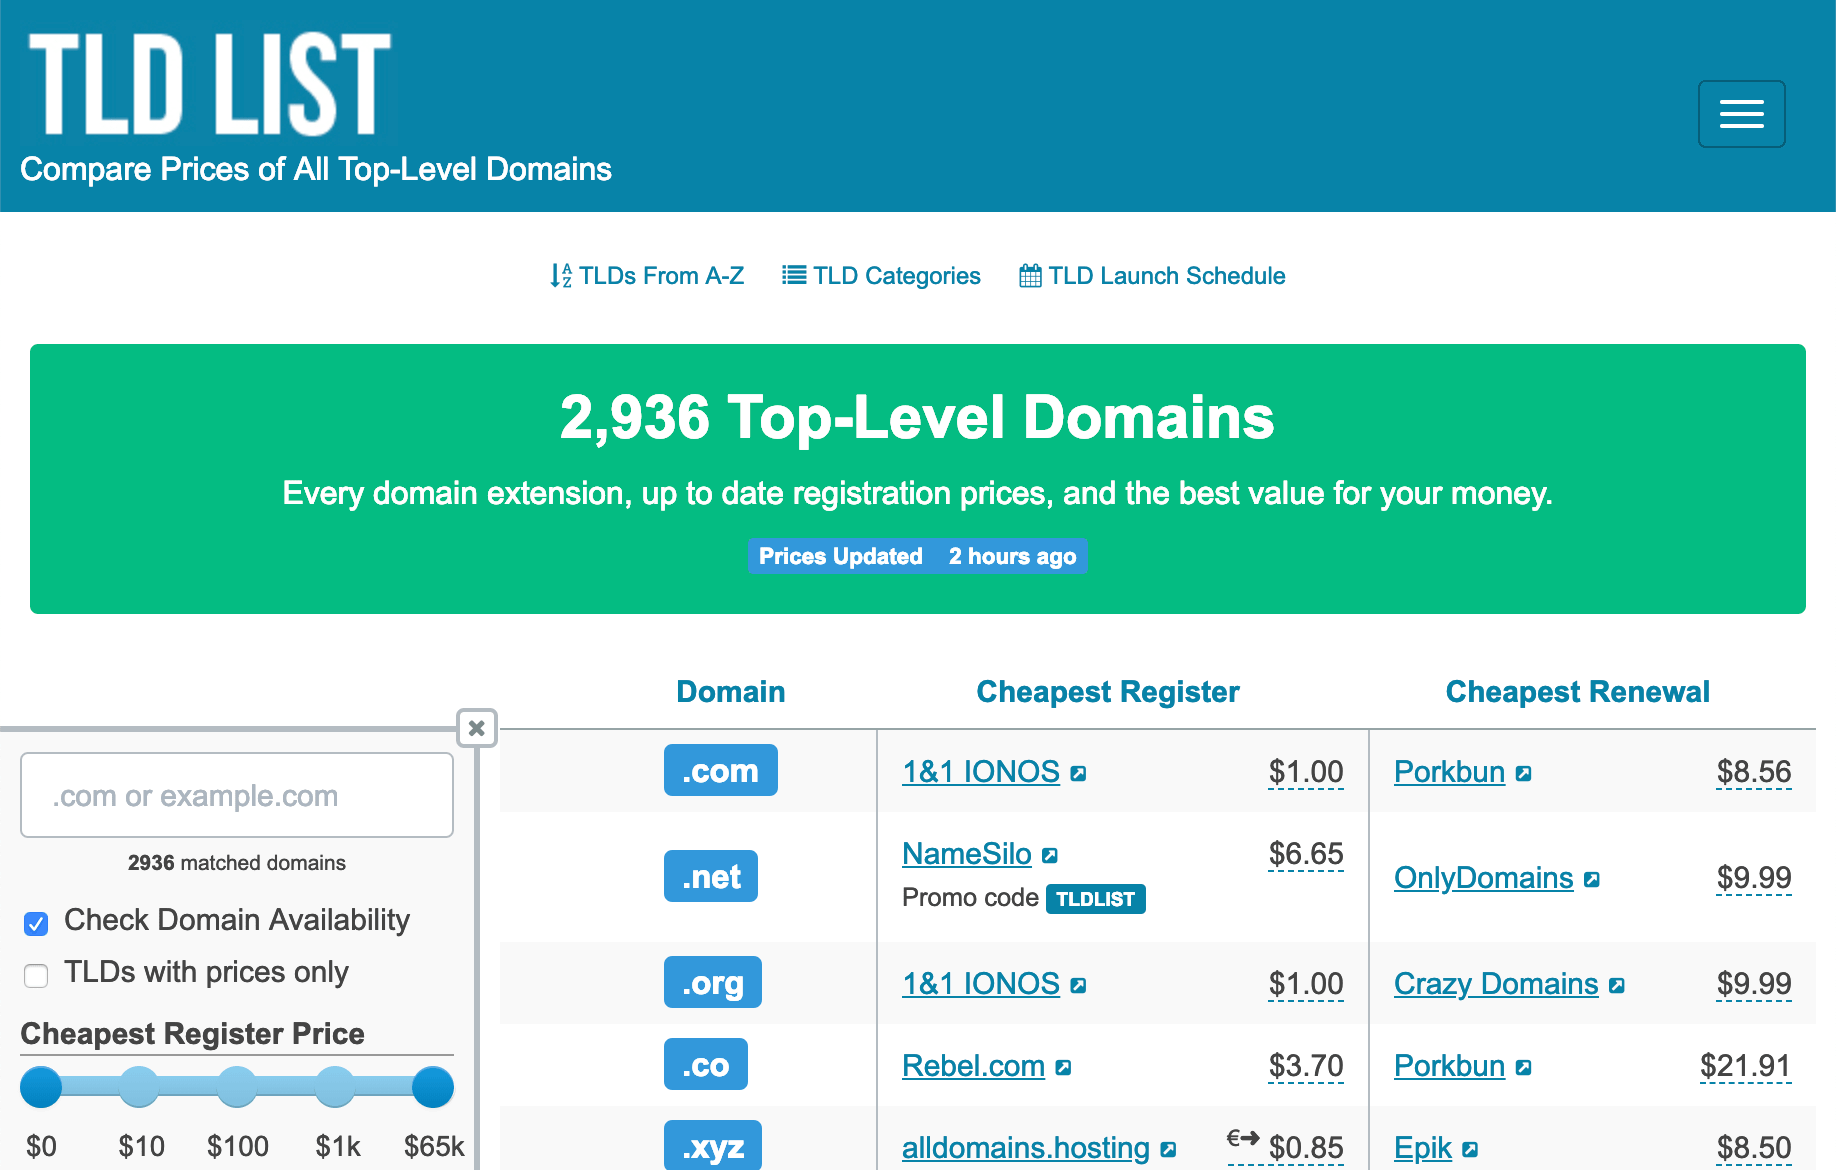 TLD-List.com for Comparing Domain Name Registration and Renewal Prices